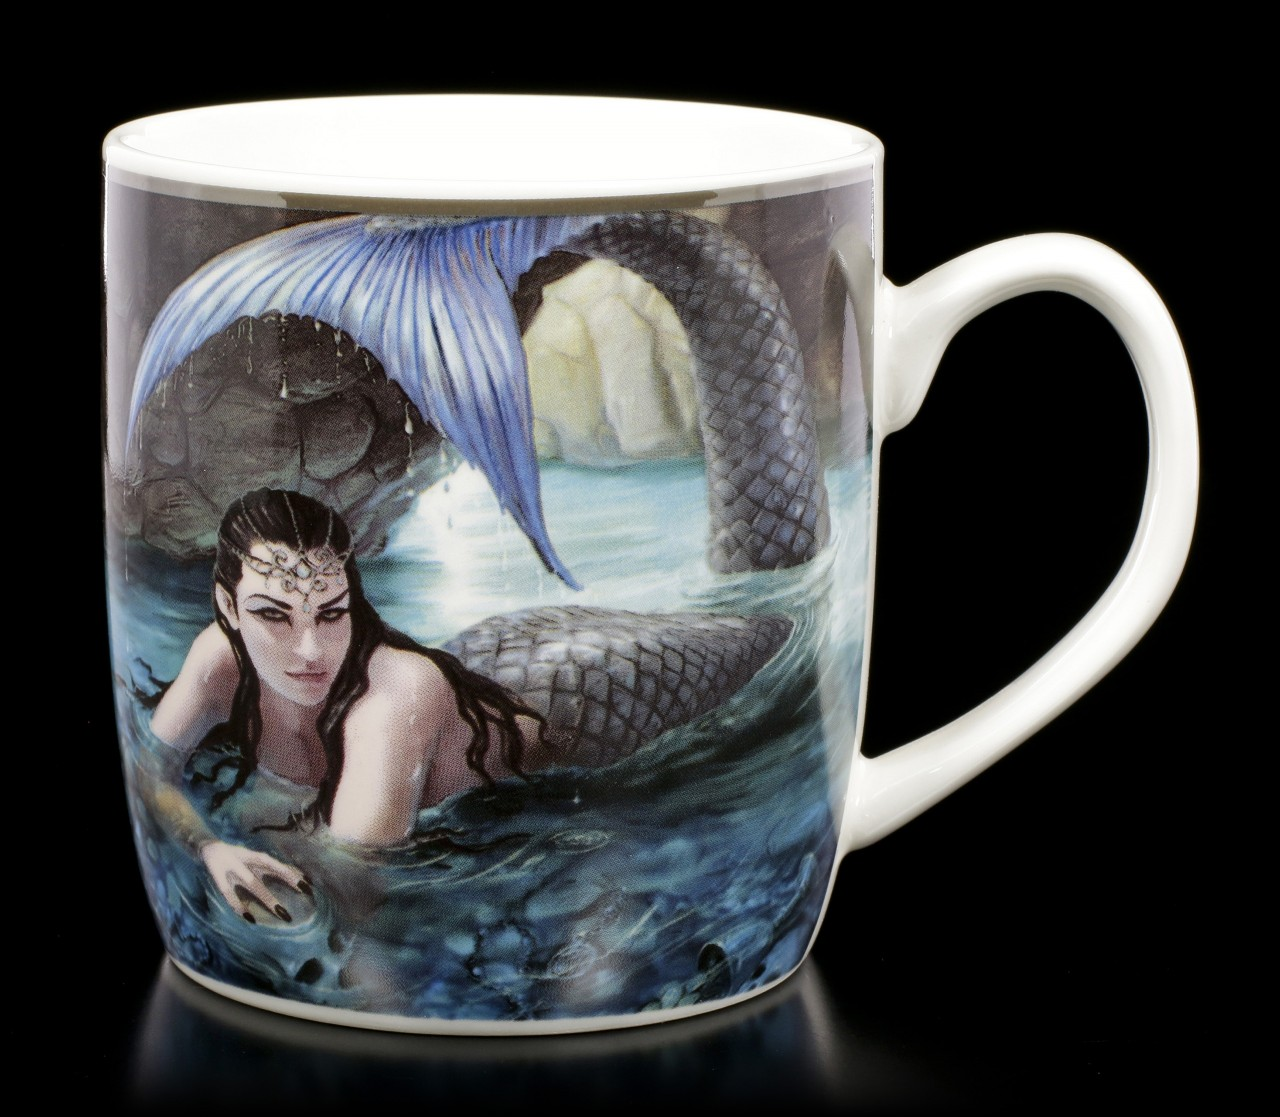 Ceramic Mug with Mermaid - Hidden Depths